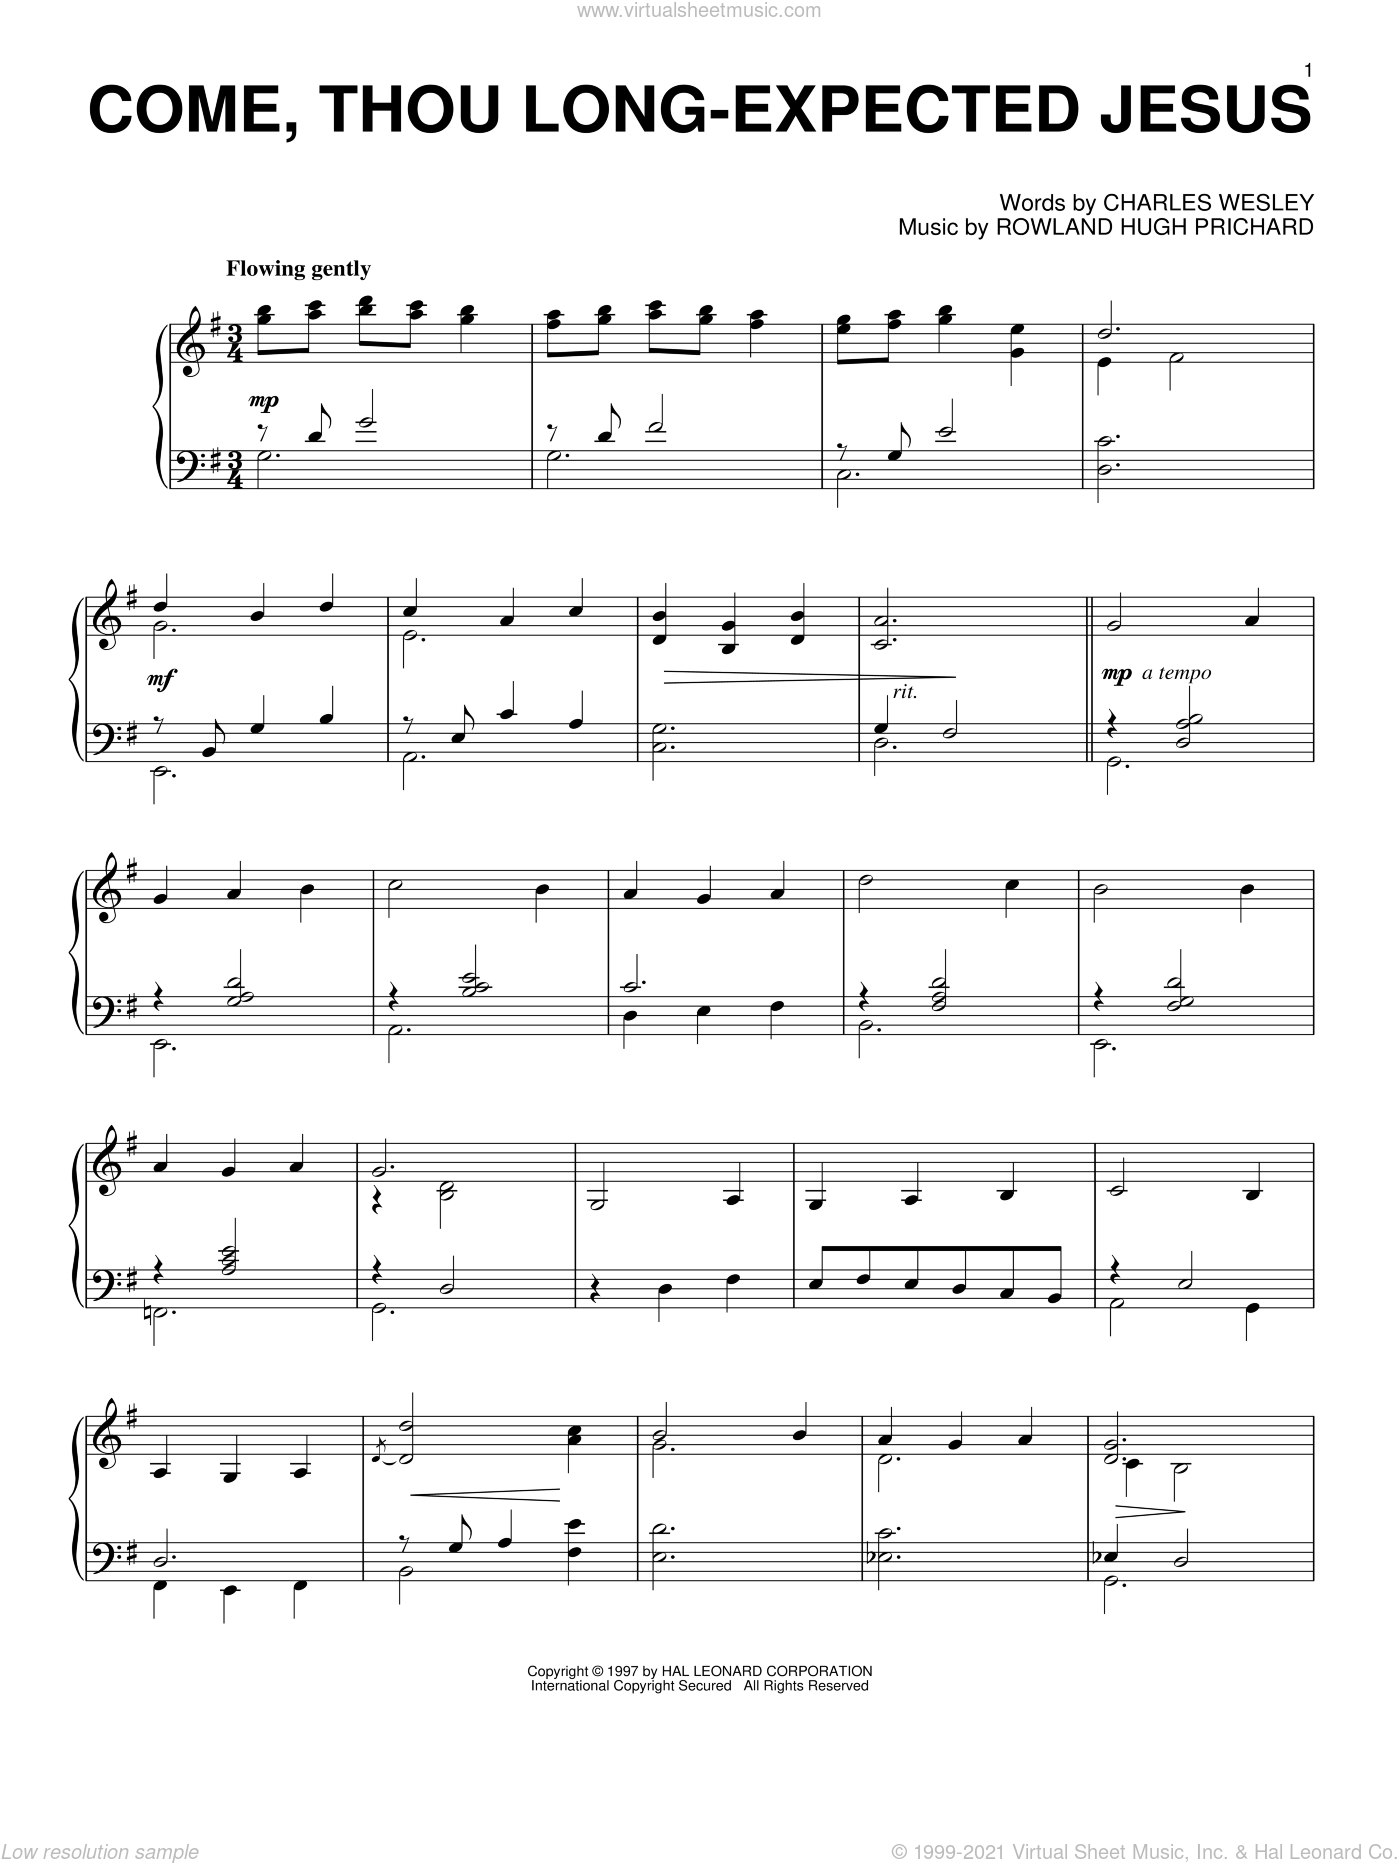 Come, Thou Long-Expected Jesus sheet music for piano solo by Charles Wesley and Rowland Prichard. Score Image Preview.